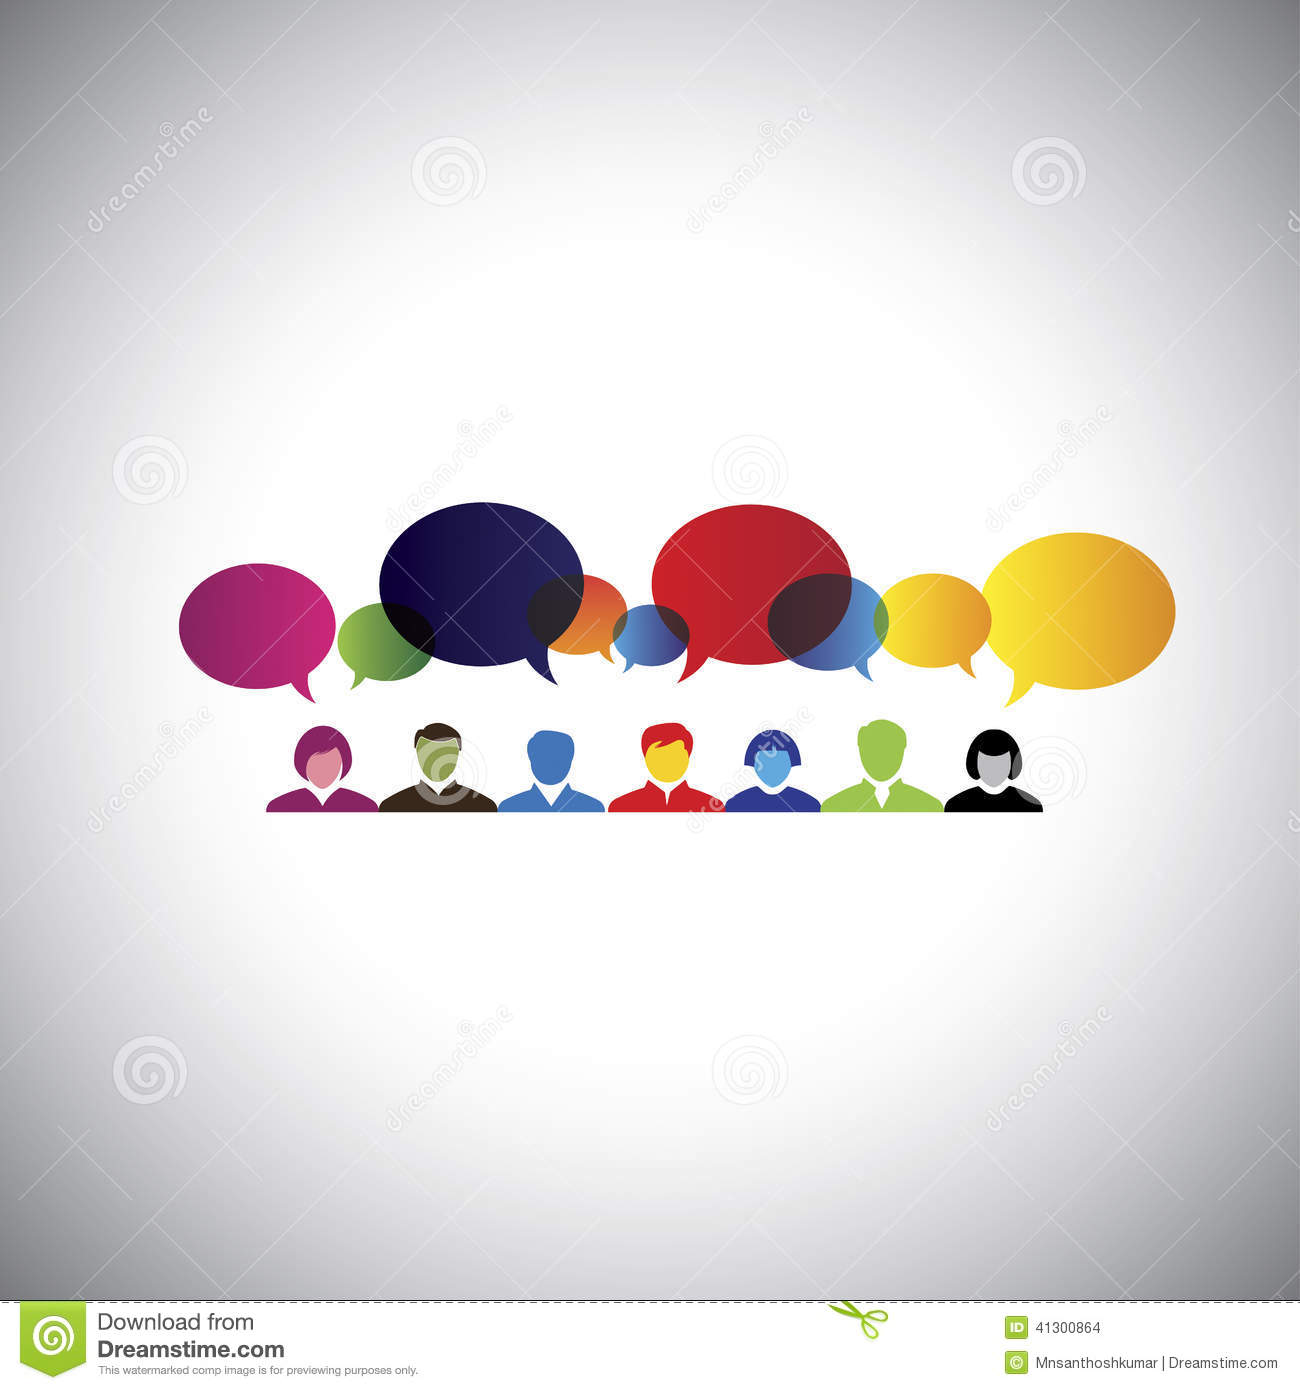 Online Social Network Of People Talking Chatting